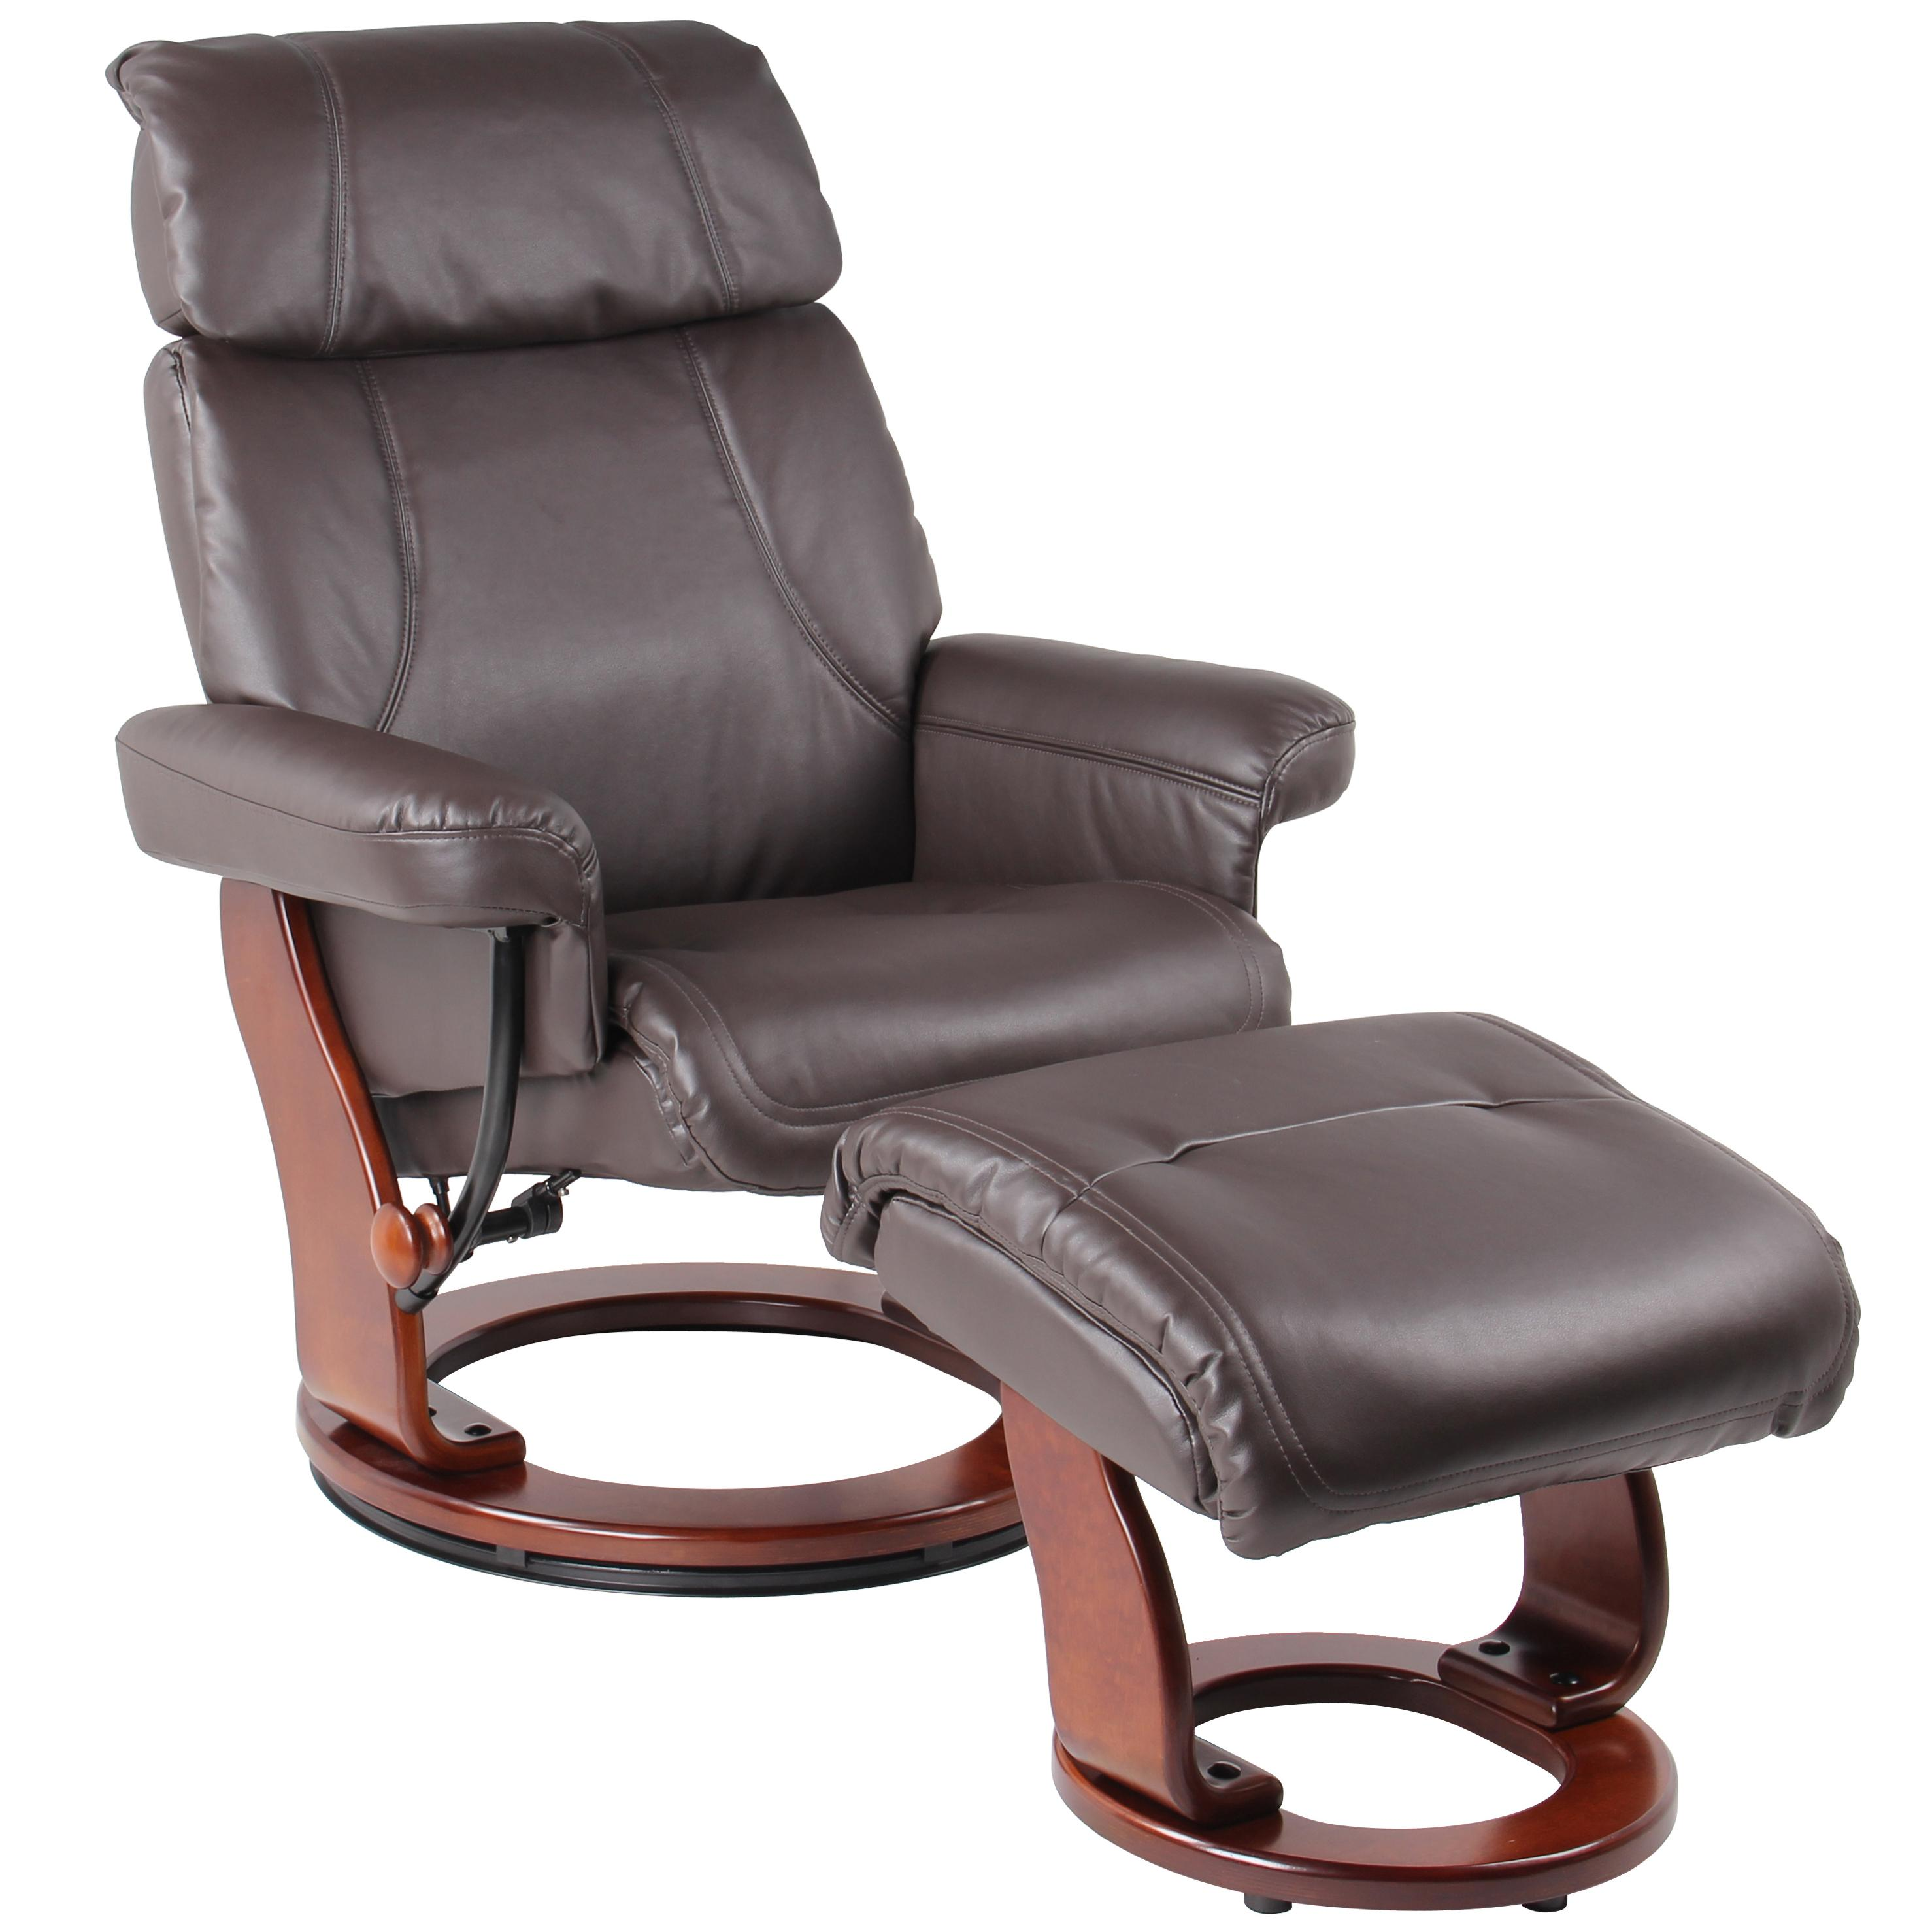 Benchmaster Bella Casual Bella Lounger - Item Number: 7511 Chocolate